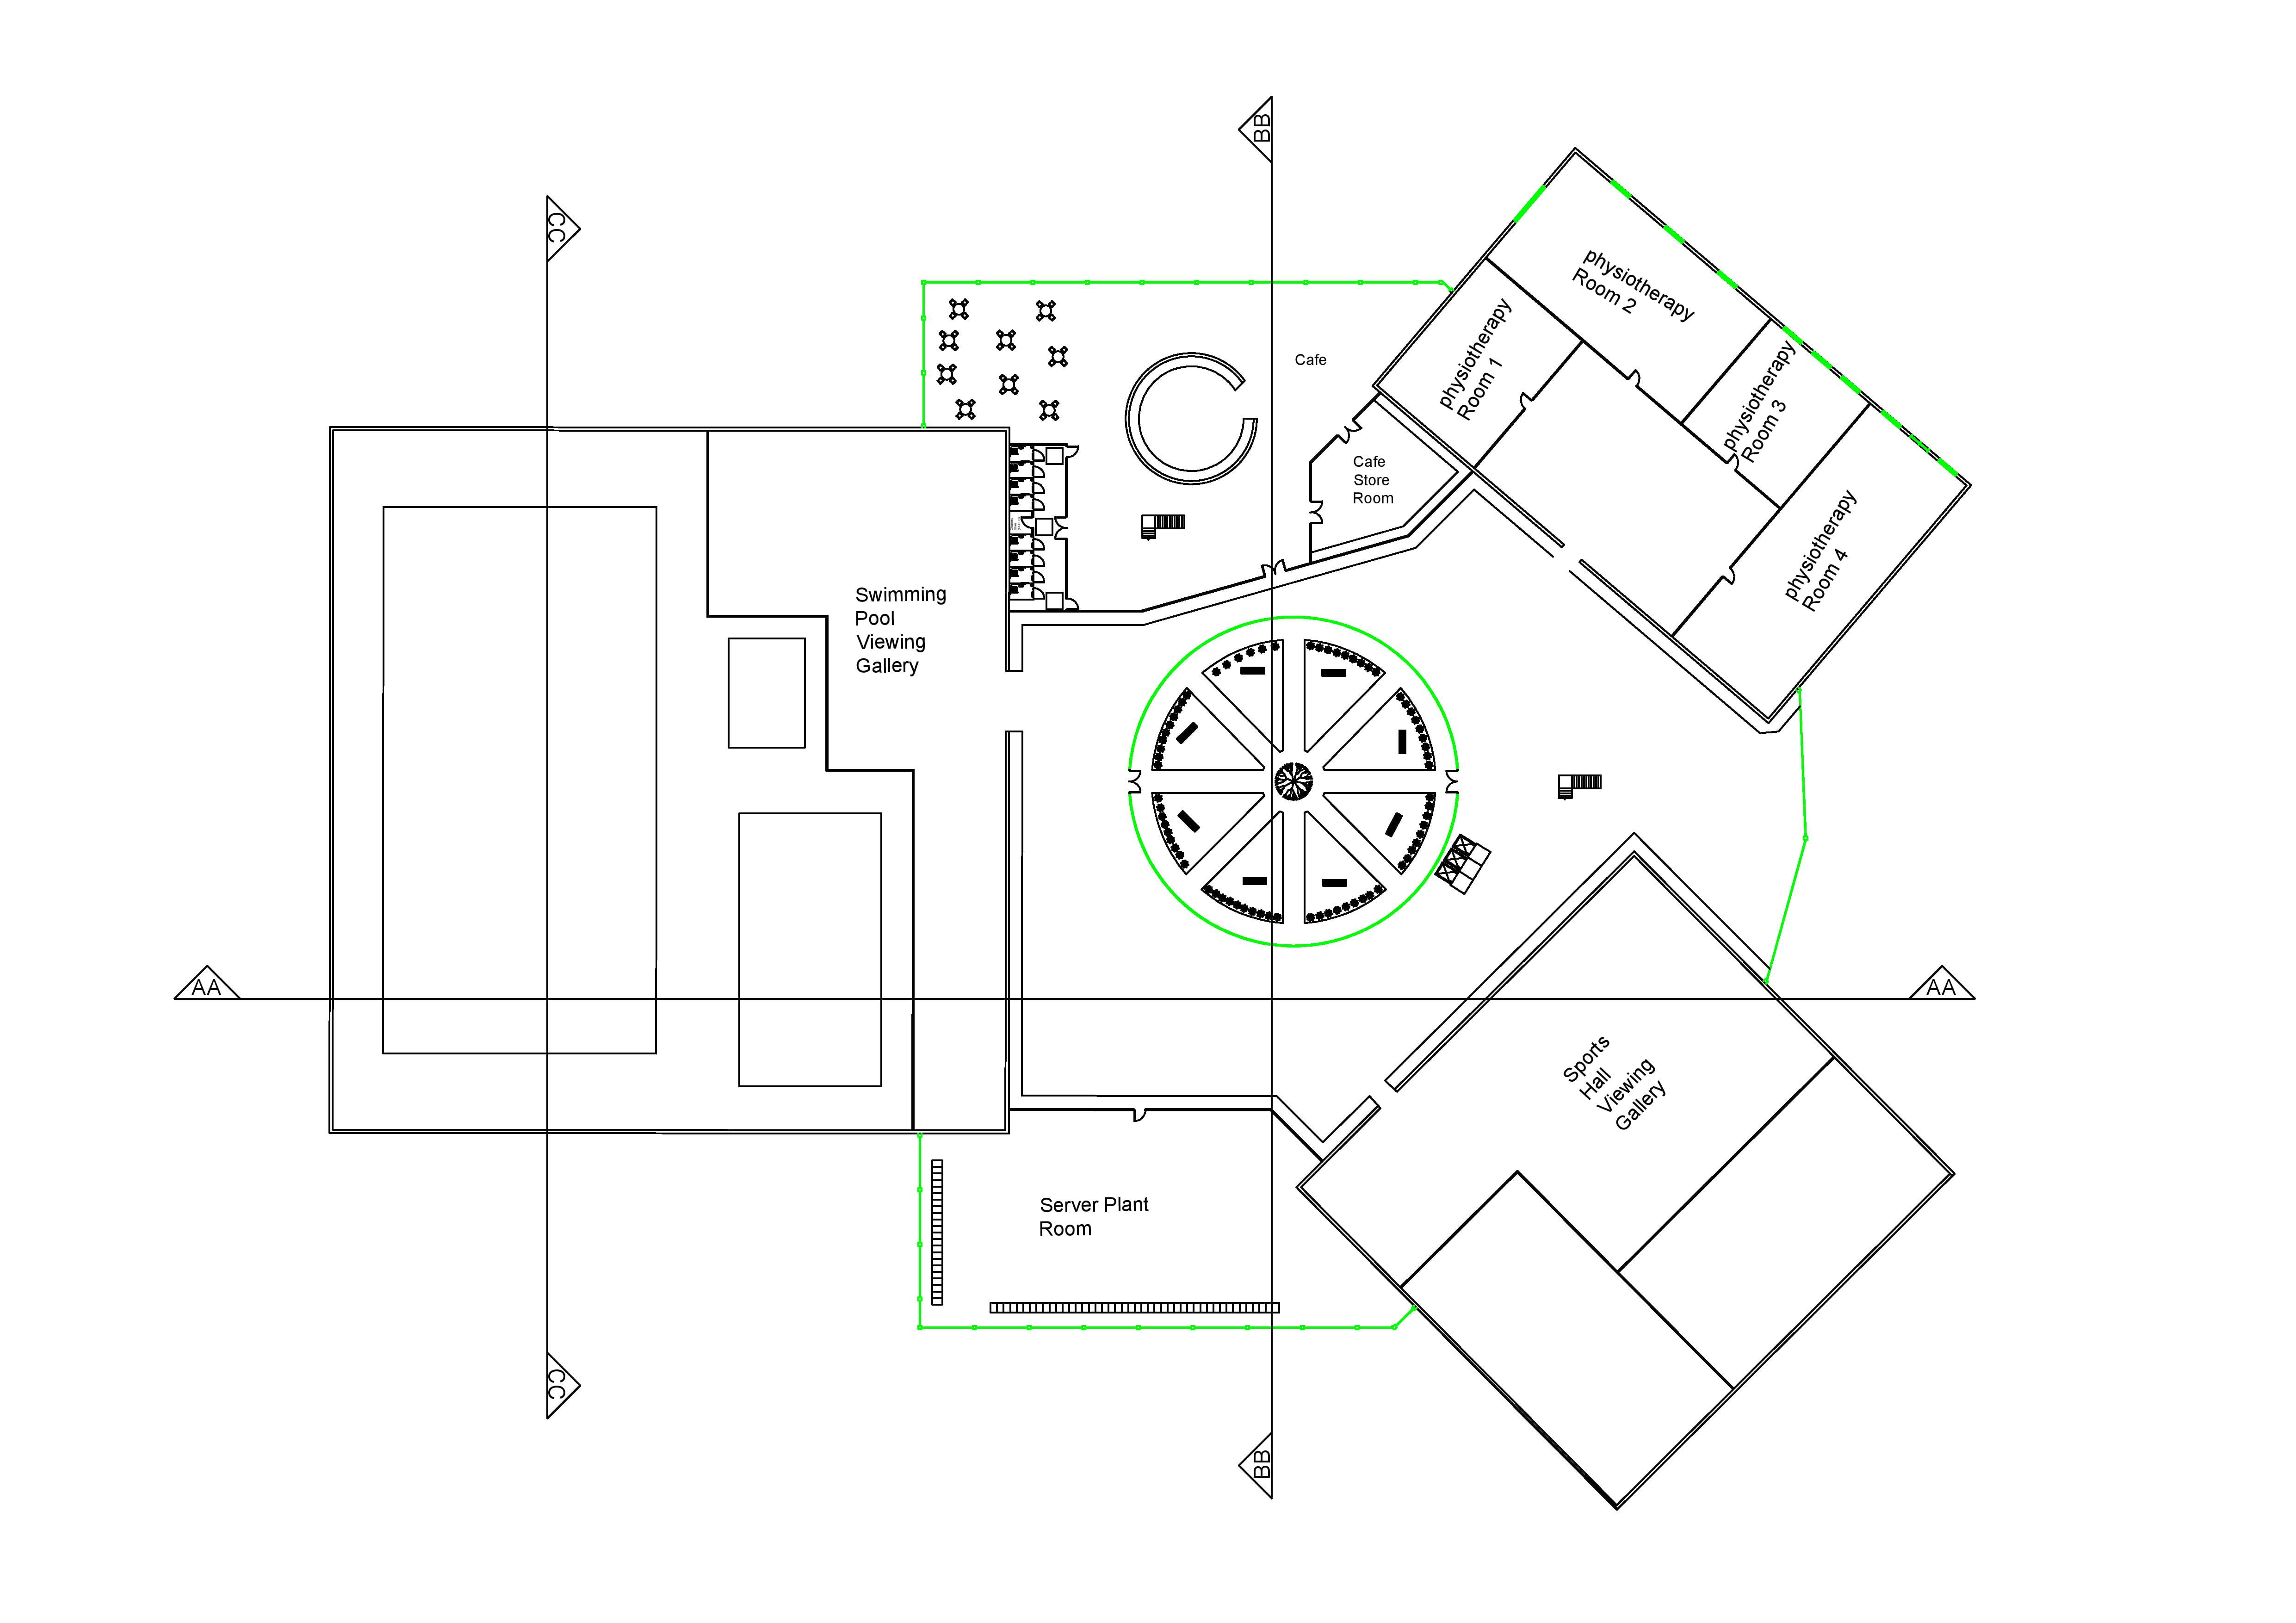 First floor plan for the building.